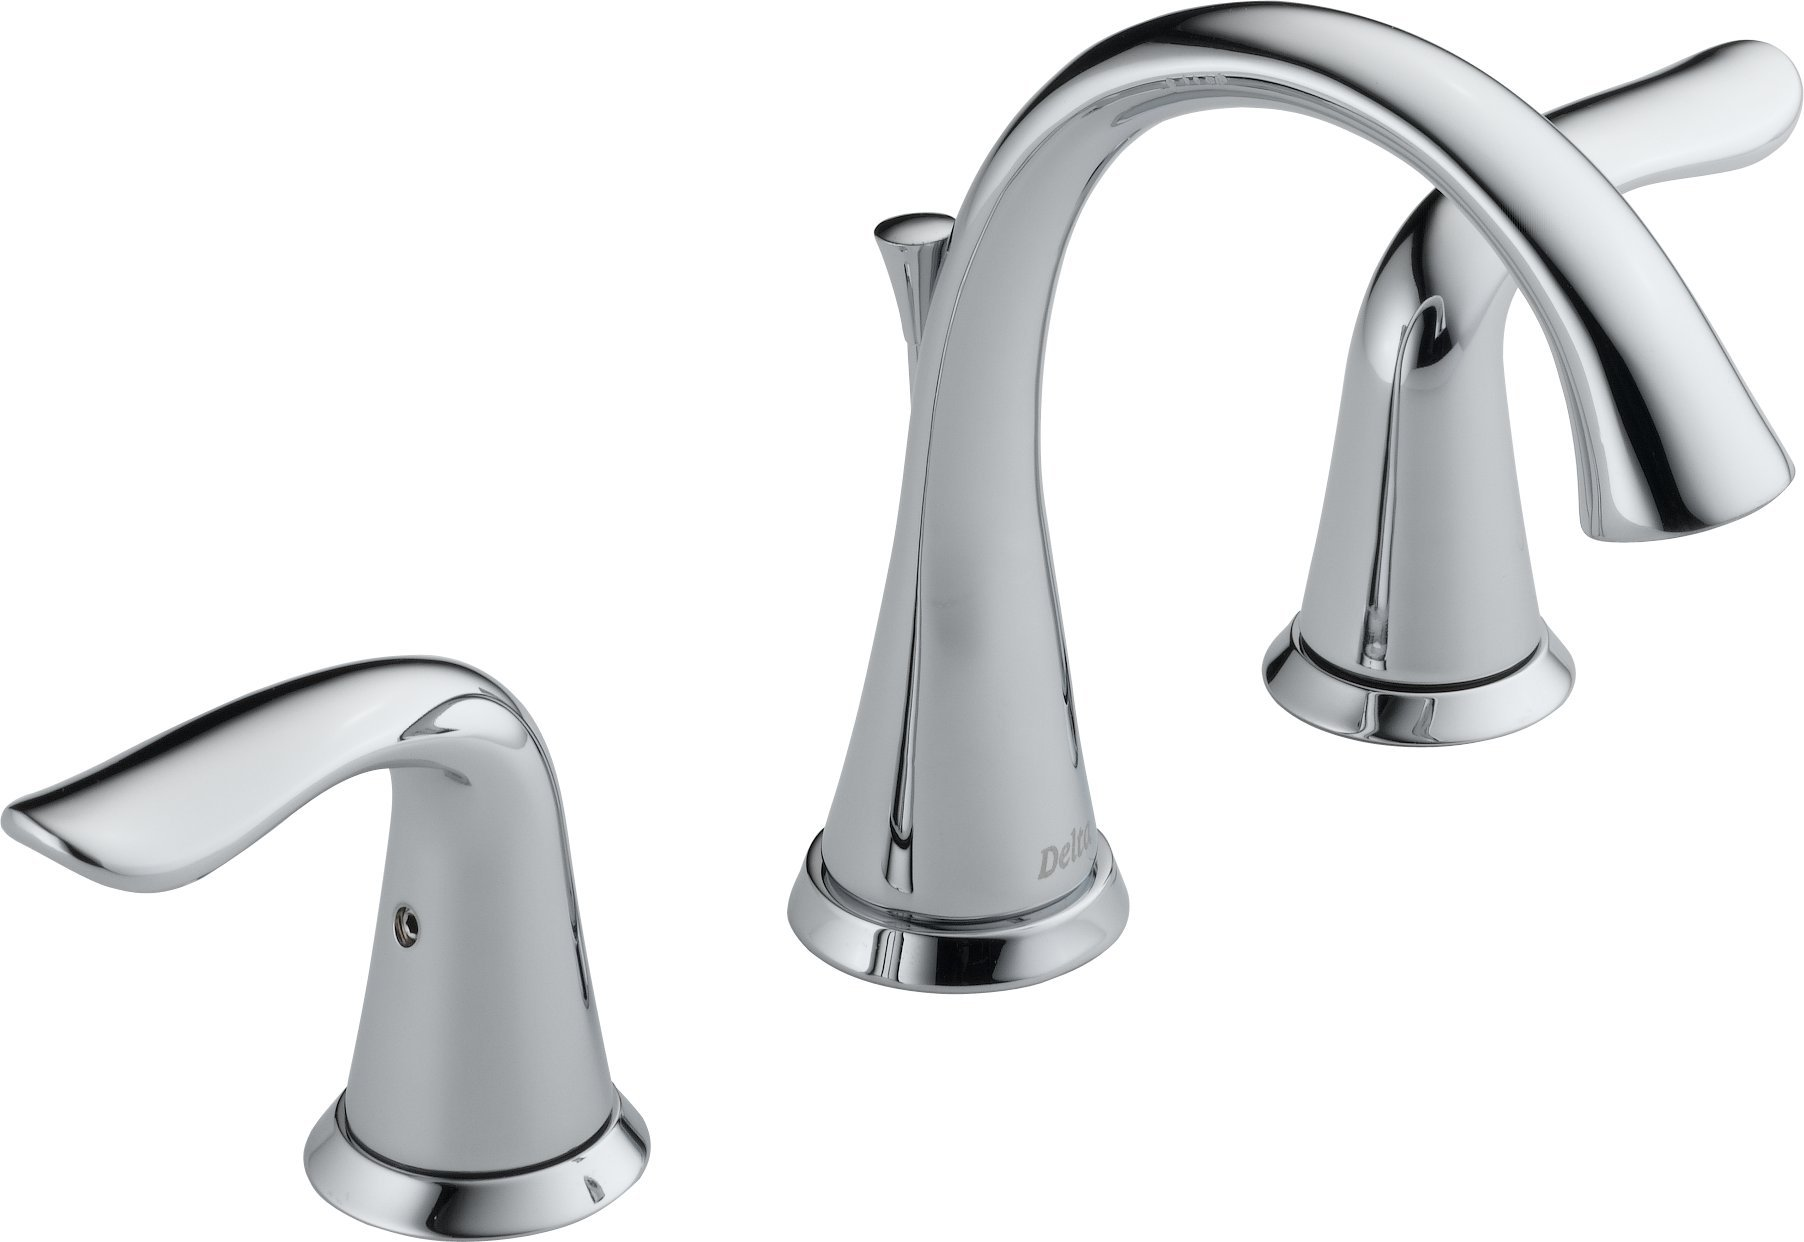 Delta Faucet 3538-MPU-DST Lahara Two Handle Widespread Bathroom Faucet, Chrome by DELTA FAUCET